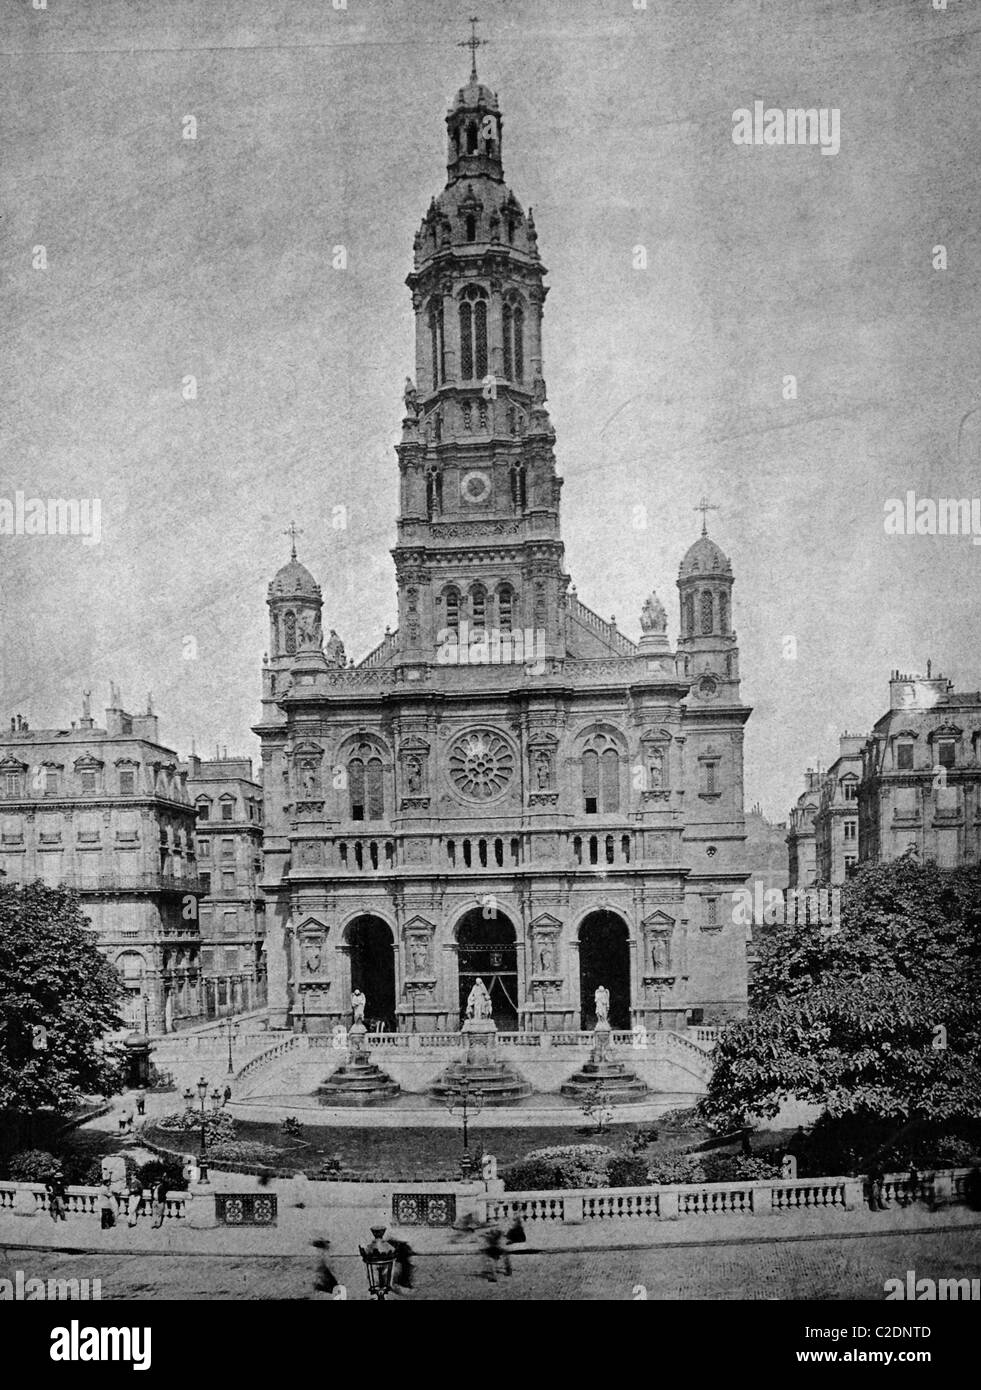 One of the first autotypes of the church Eglise de la Trinite, Paris, France, historical photograph, 1884 Stock Photo